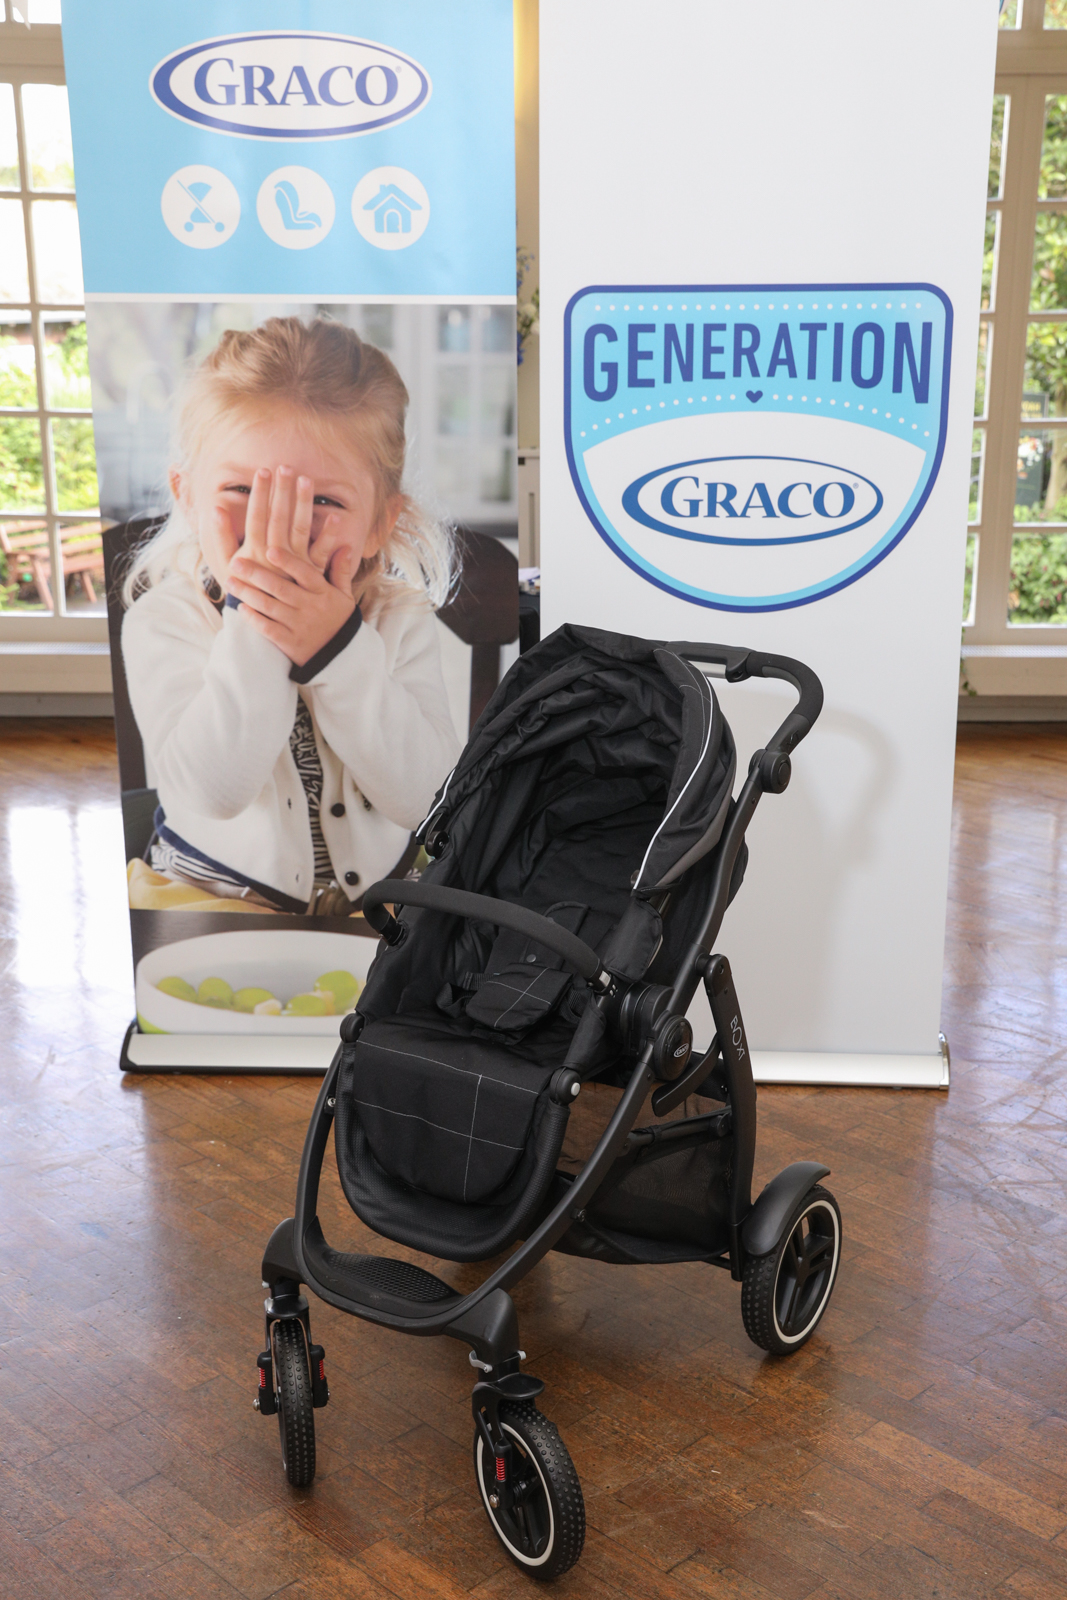 From birth to pre-school: exploring the Graco range